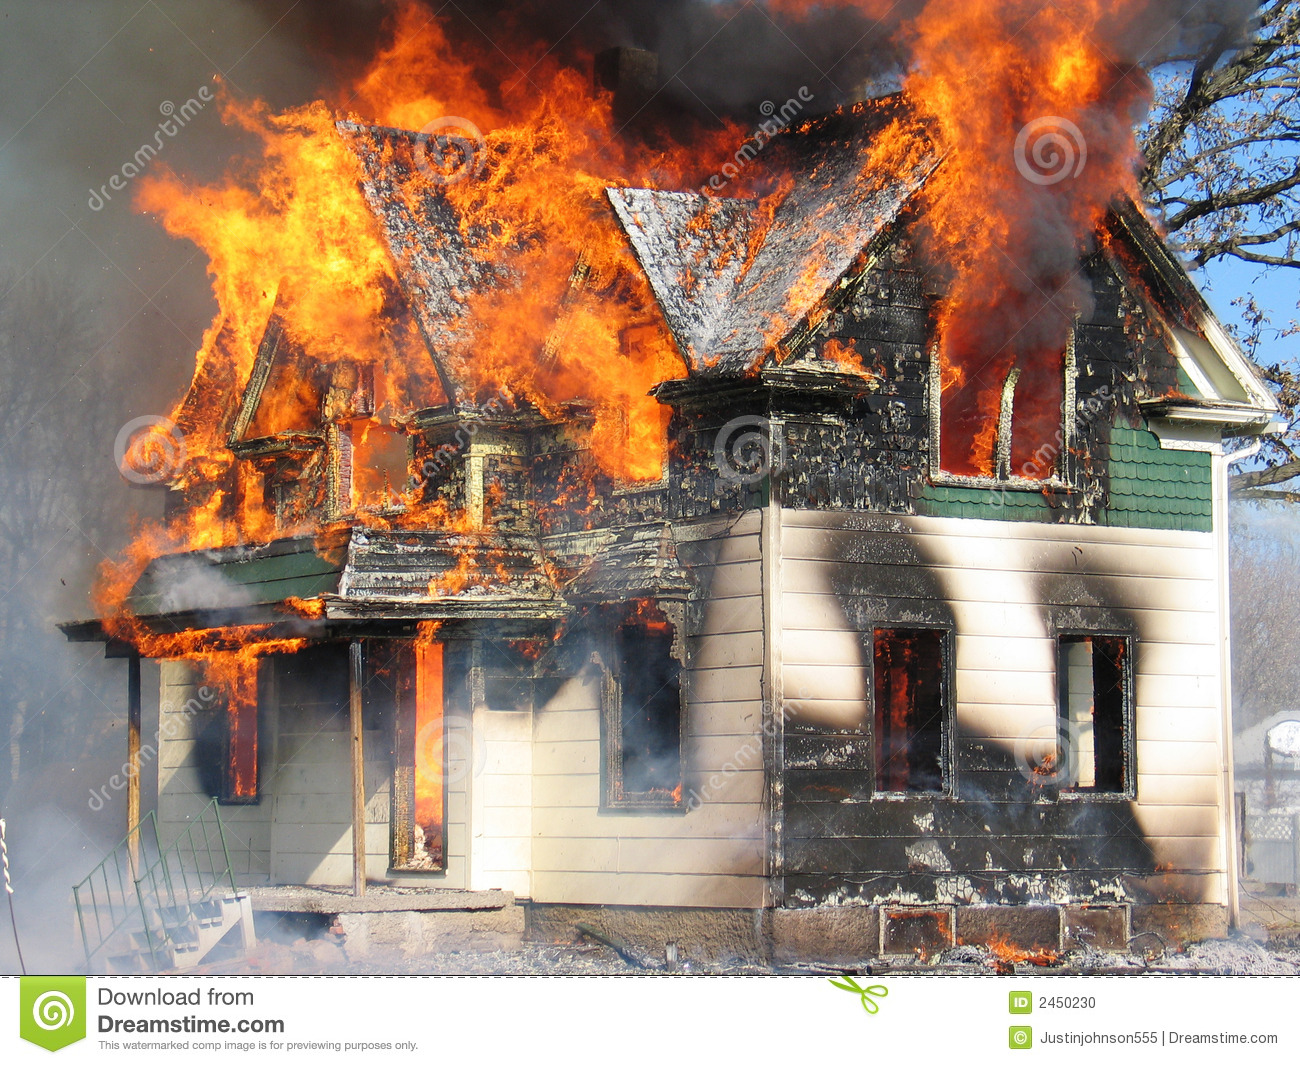 Fire Dangers Stock Photo - Image: 2450230